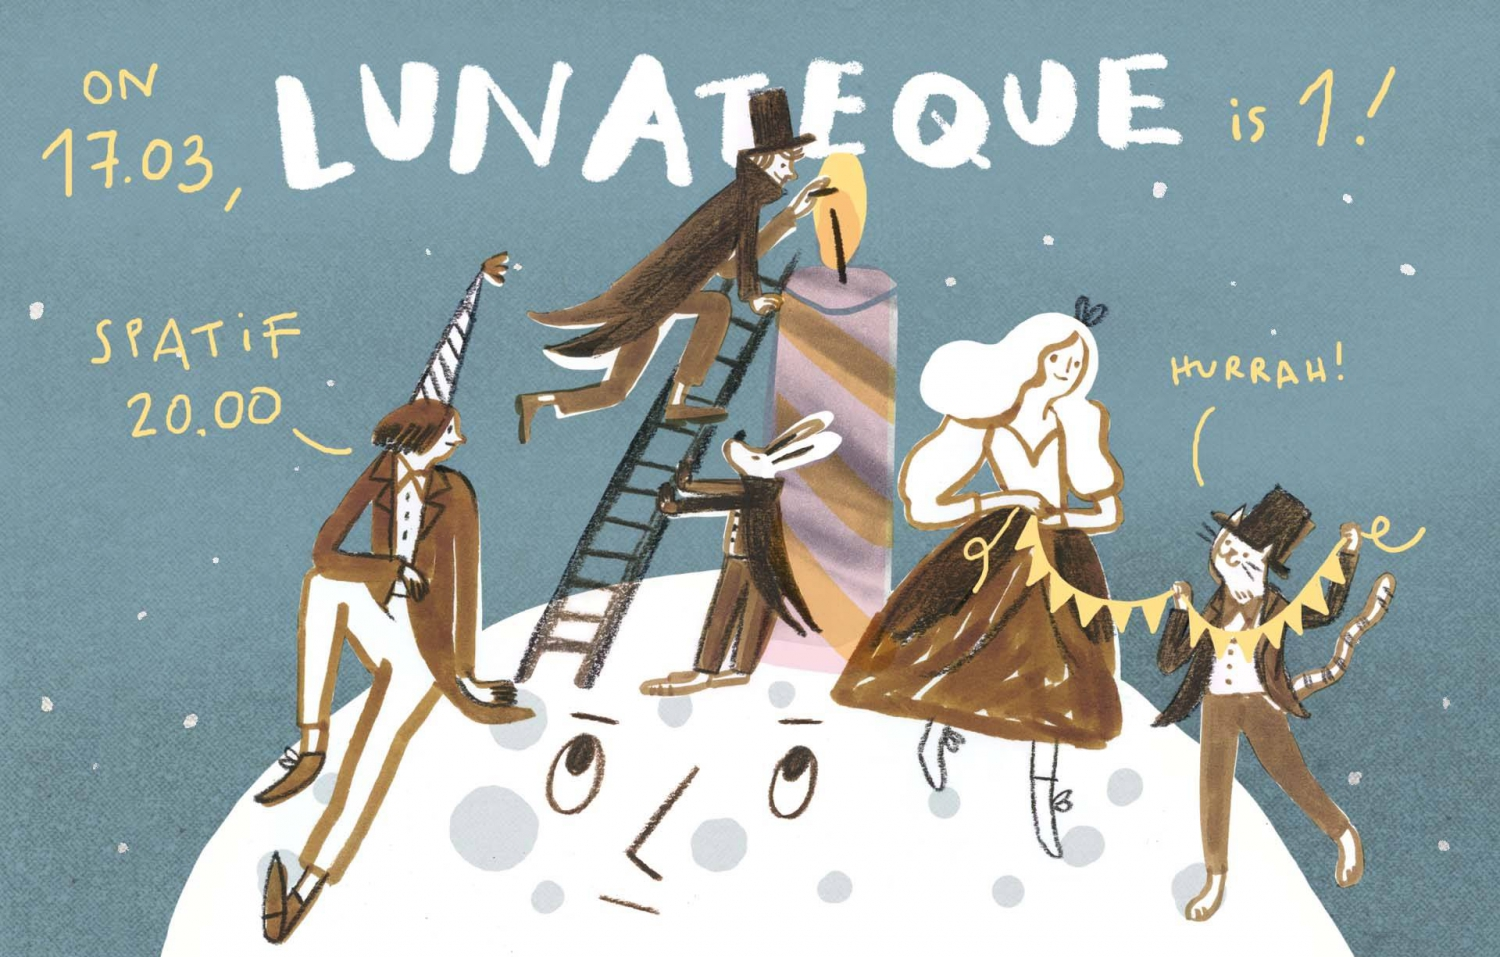 Lunateque is 1